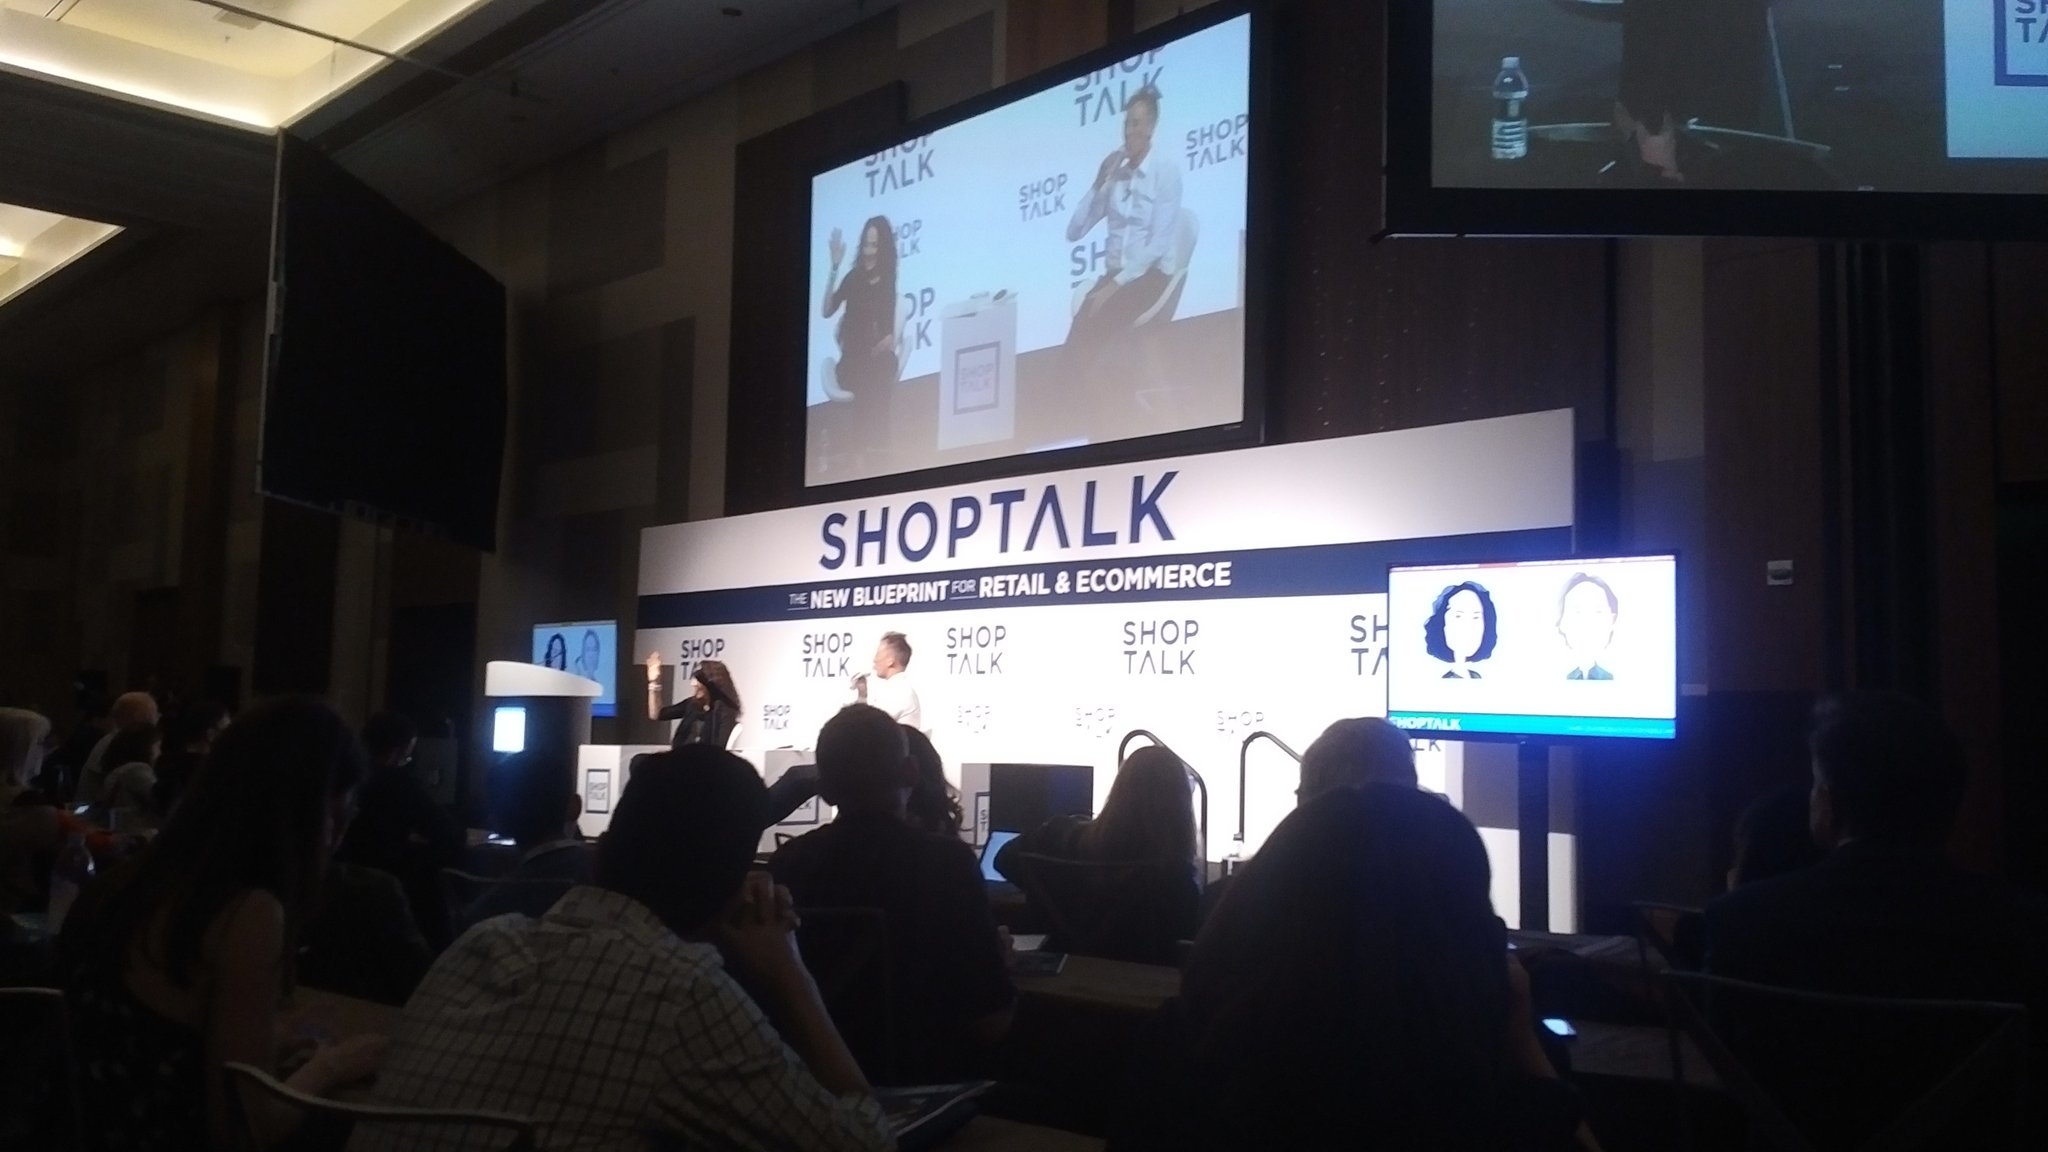 #shoptalk17 it's easier for eCommerce retailers to open stores than it is for traditional retailers to start eCommerce - David Bell https://t.co/Sh9KE08dD9